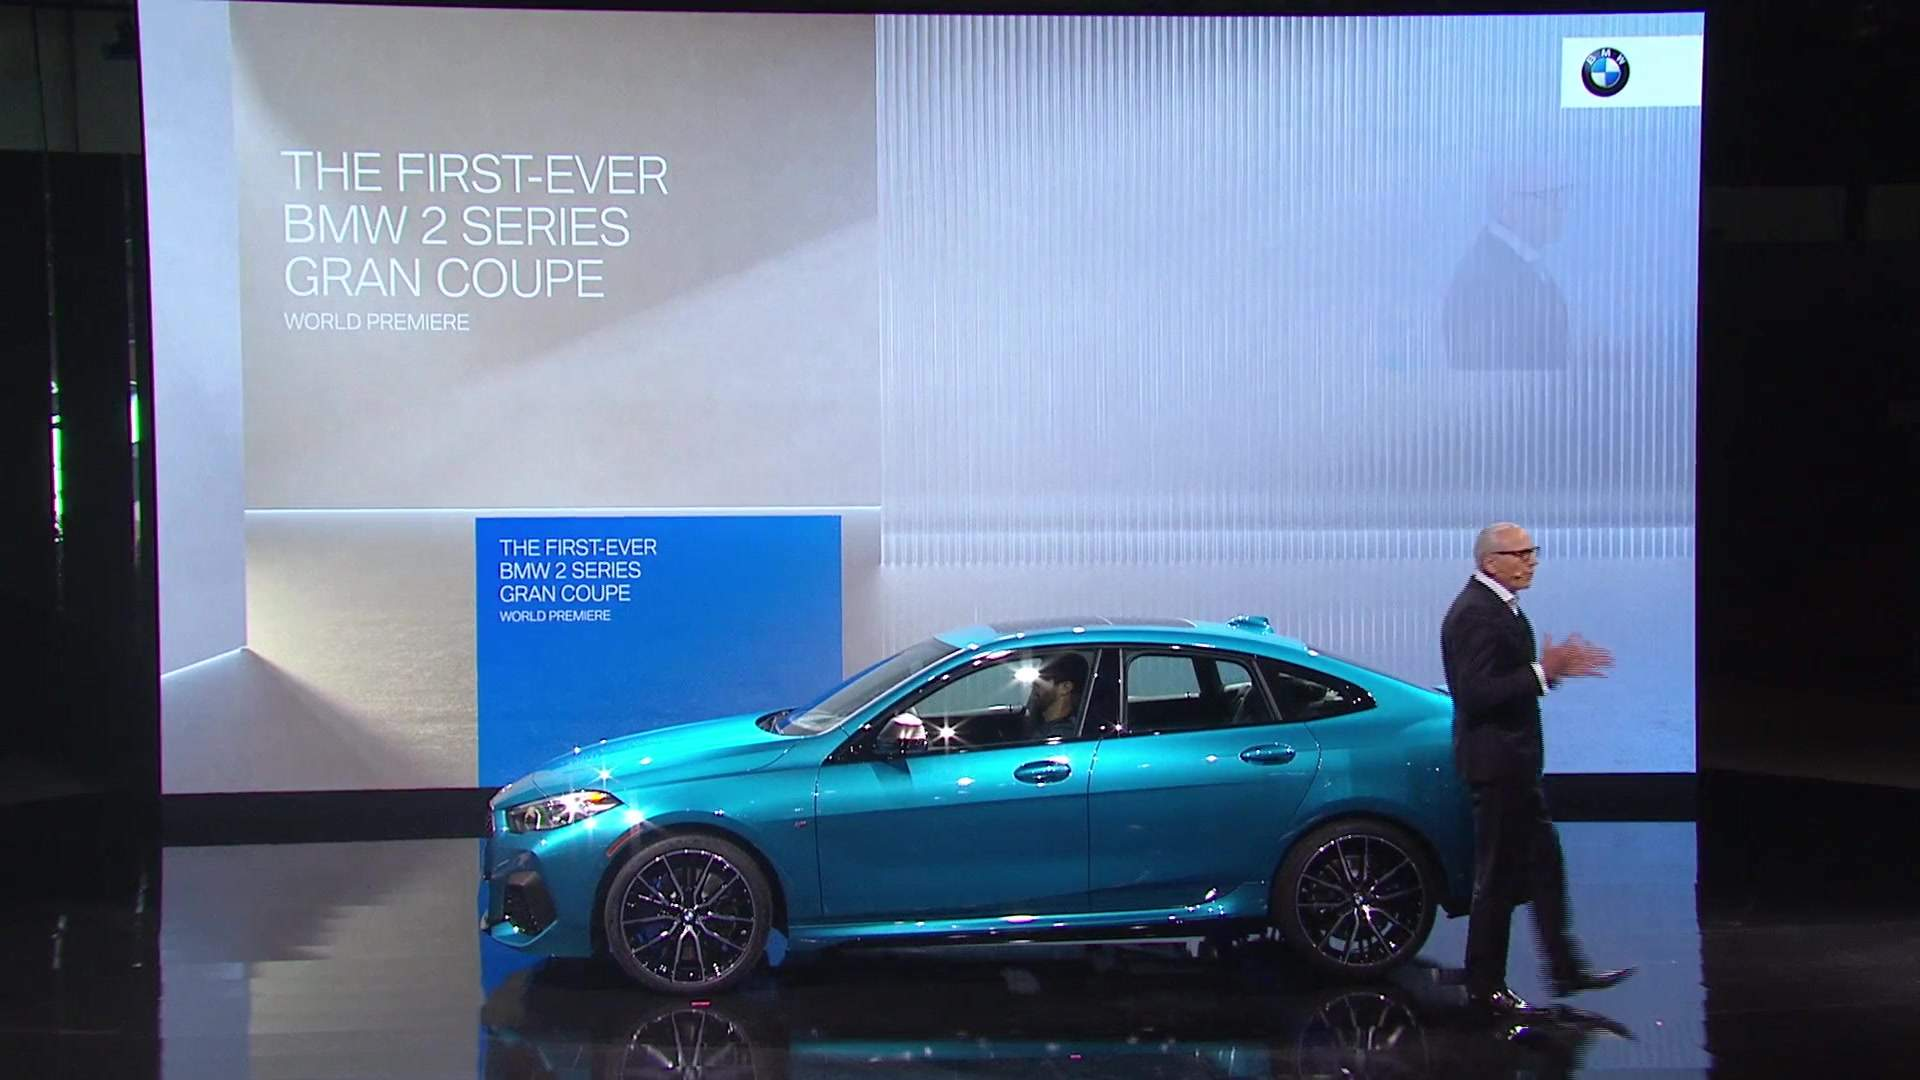 World Premiere of the first-ever BMW 2 Series Coupe at LA Auto Show 2019